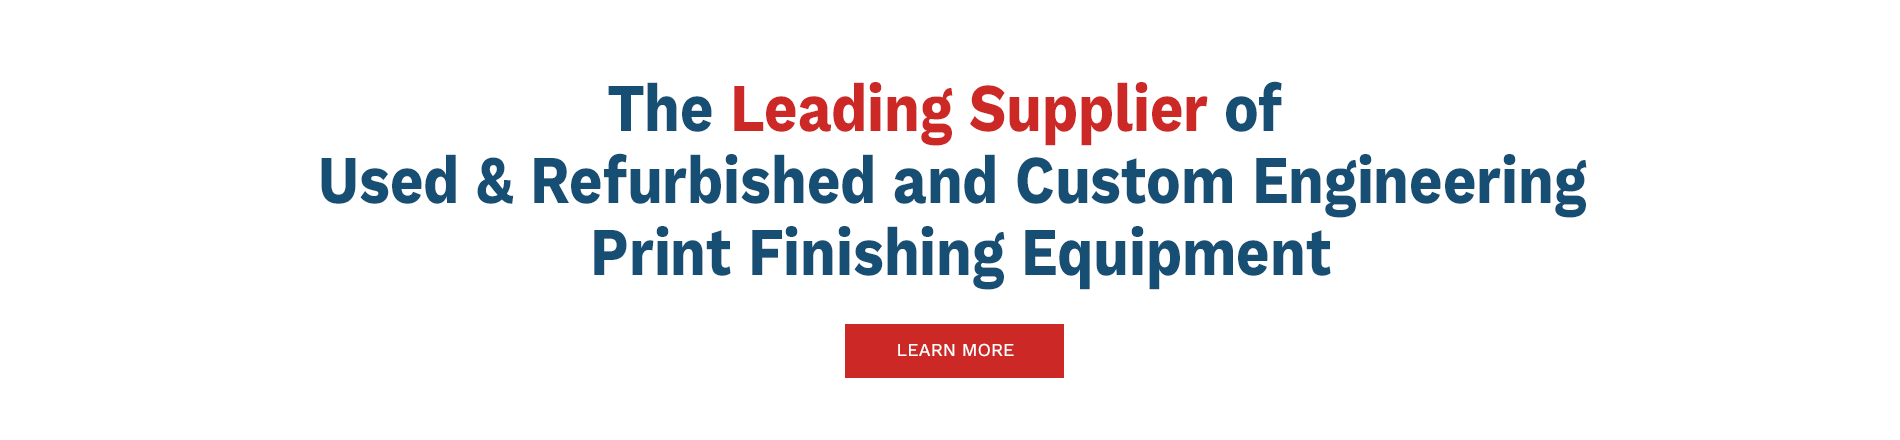 The Leading Supplier of Used & Refurbished and Custom Engineering Print Finishing Equipment